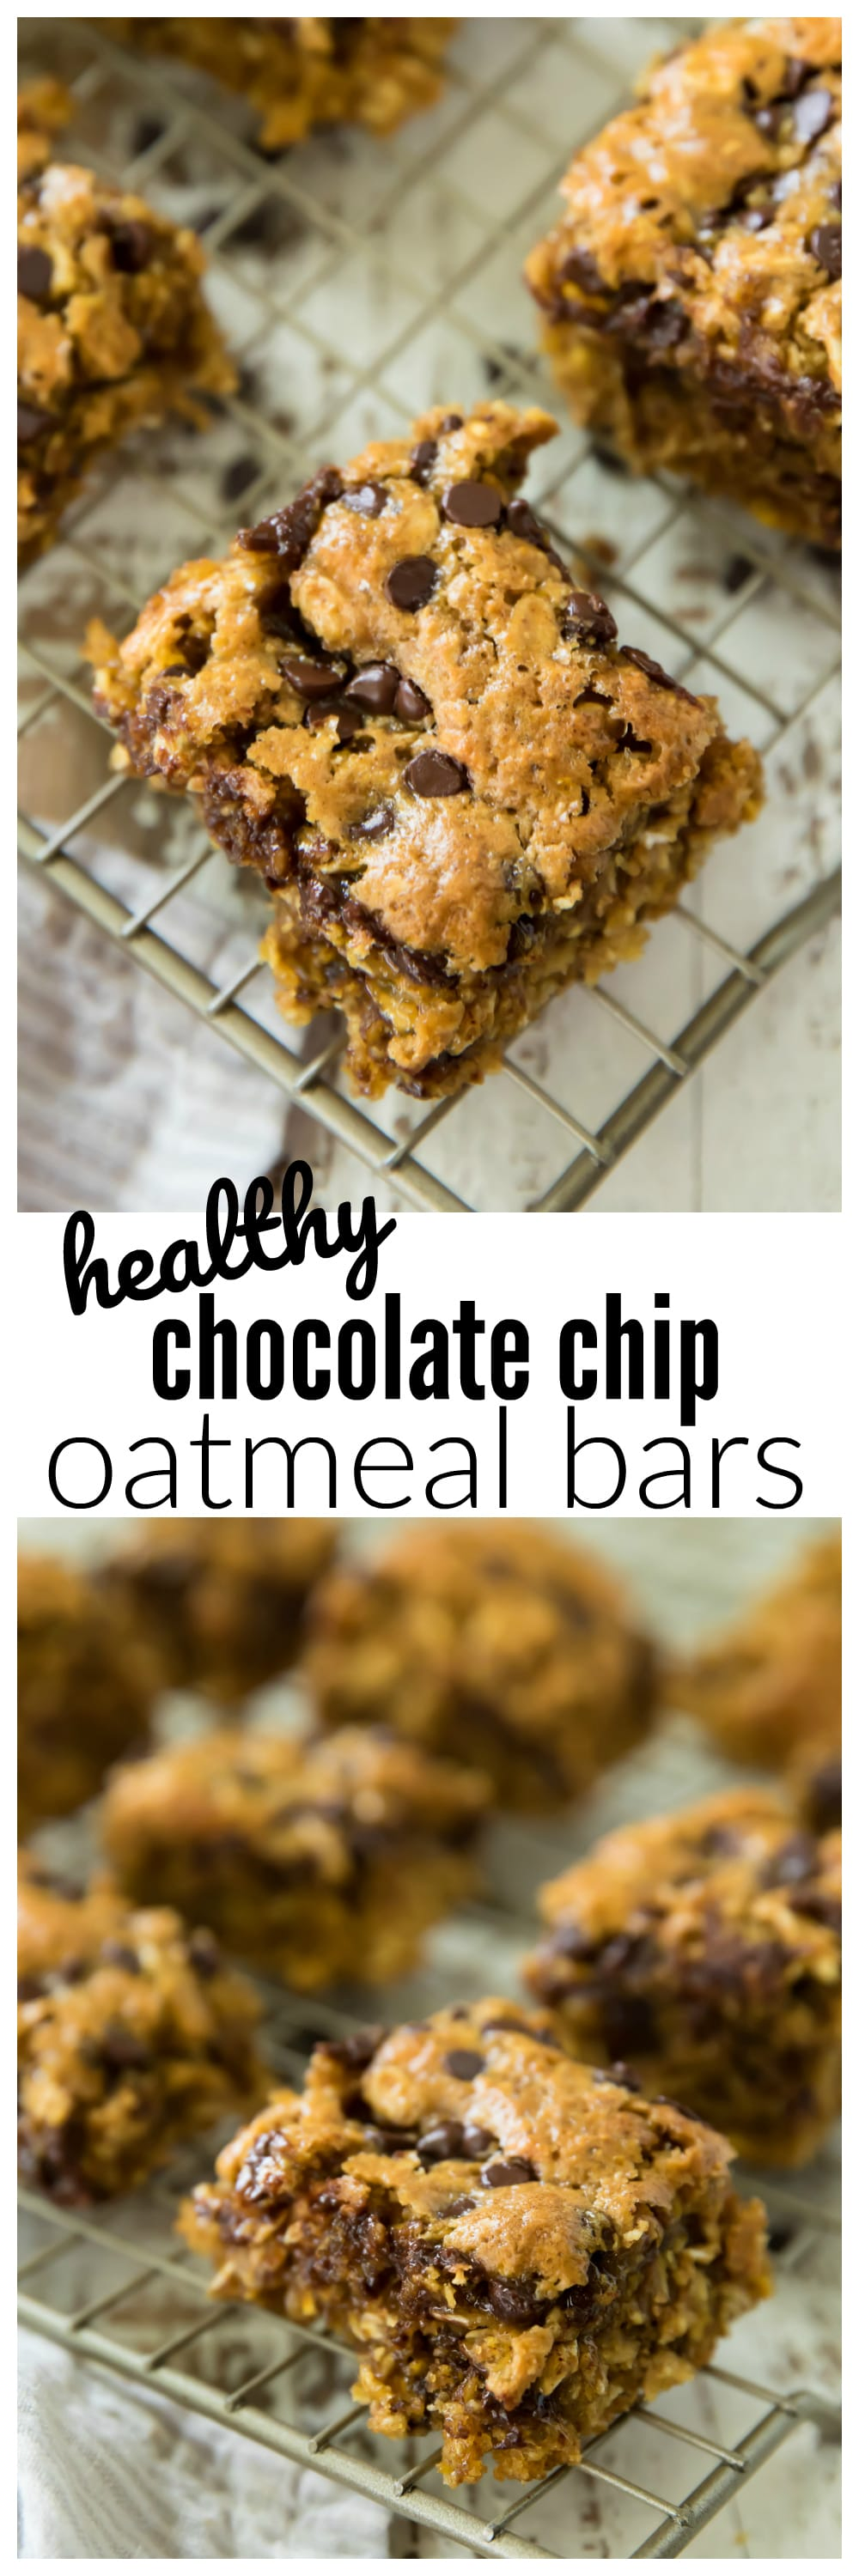 Healthy Chocolate Chip Oatmeal Bars are perfect as a quick and easy on-the-go breakfast, snack, or dessert! They are made with whole grain oats making them as healthy as your morning bowl of oatmeal!